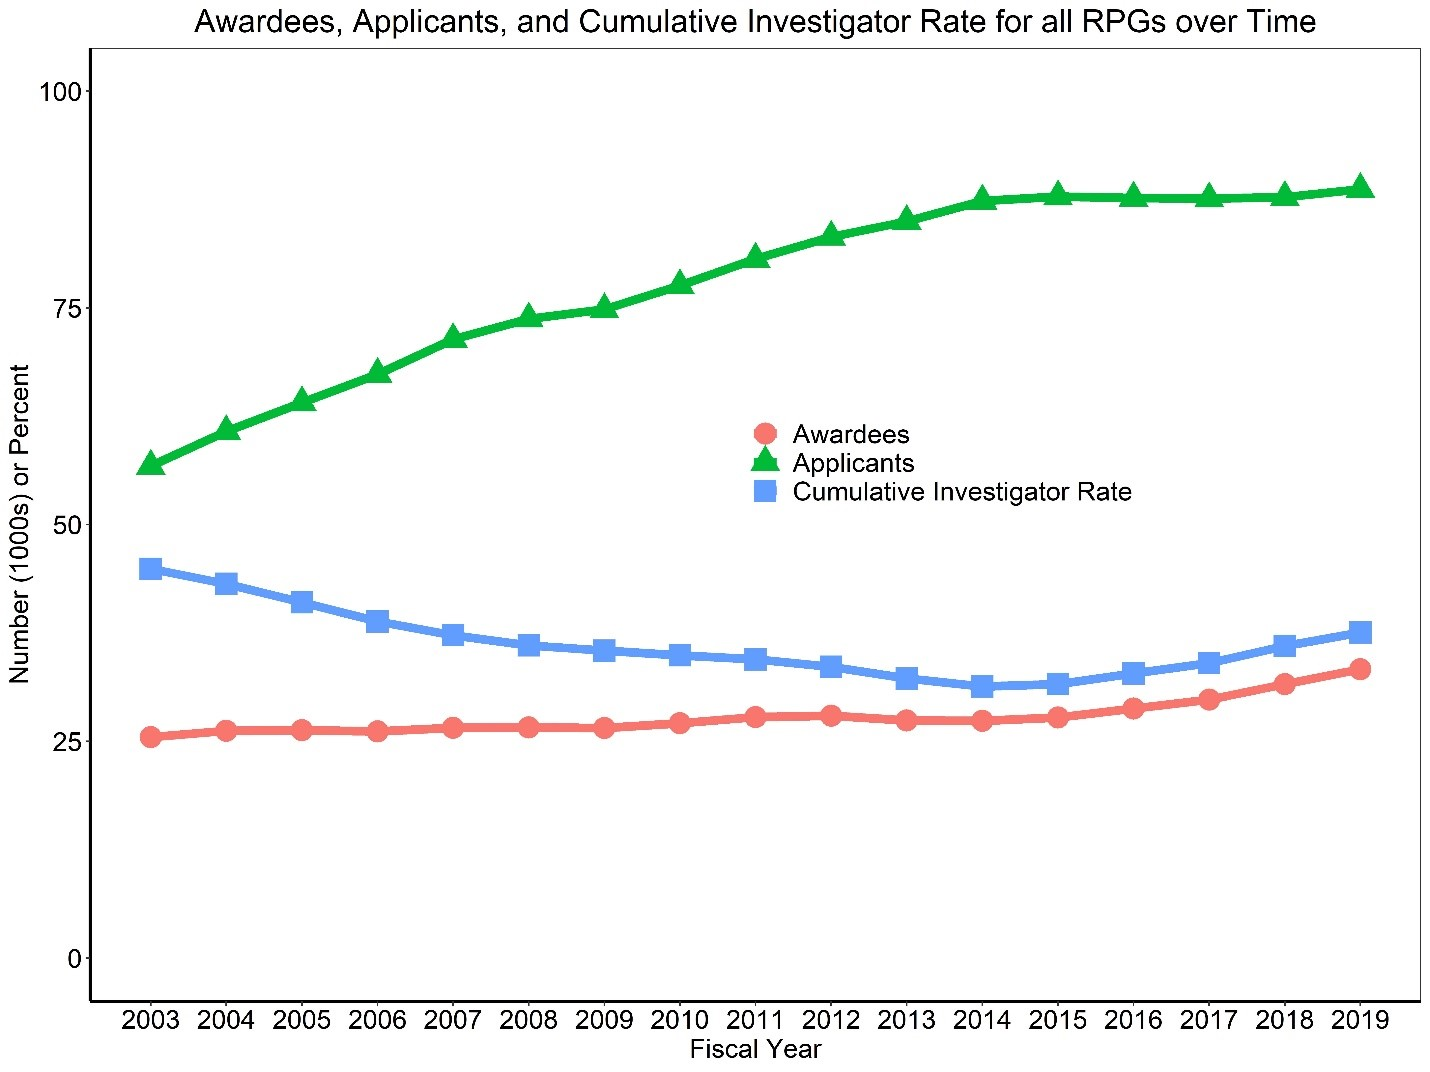 Figure 1 shows a line graph with applicants, awardees, and the Cumulative Investigator Rate for RPGs over time. The X axis is fiscal years 2003 to 2019, while the Y axis is either the absolute number for applicants and awardees or a percent for the Cumulative Investigator Rate from 0 to 100. Awardees, applicants, and the Cumulative Investigator Rate are shown in separate red circle, green triangle, and blue square lines, respectively.